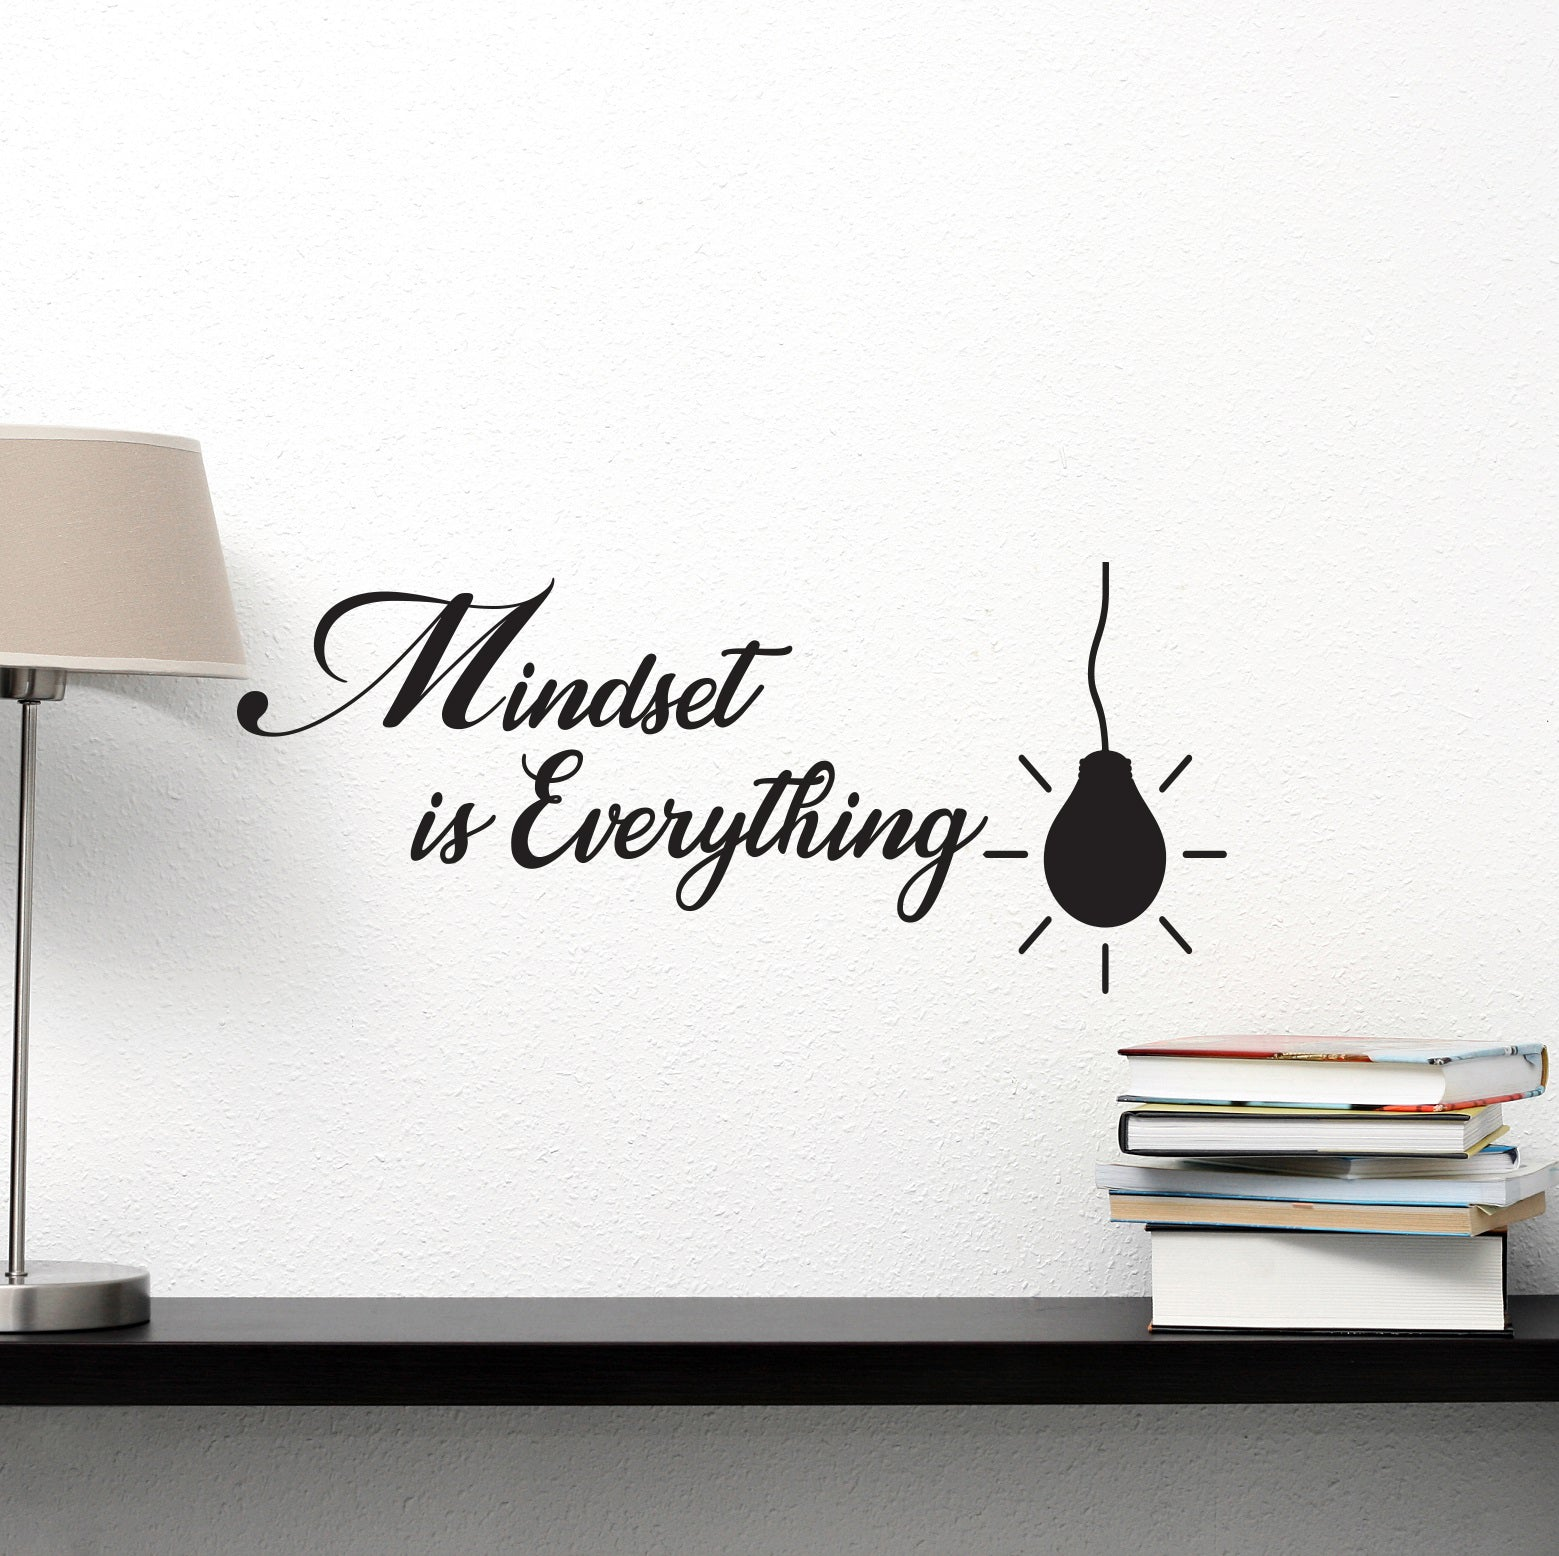 Vinyl Wall Decal Mindset is Everything School Classroom Office Inspirational Words Quote Phrase Stickers ig6242 (22.5 in X 10 in)